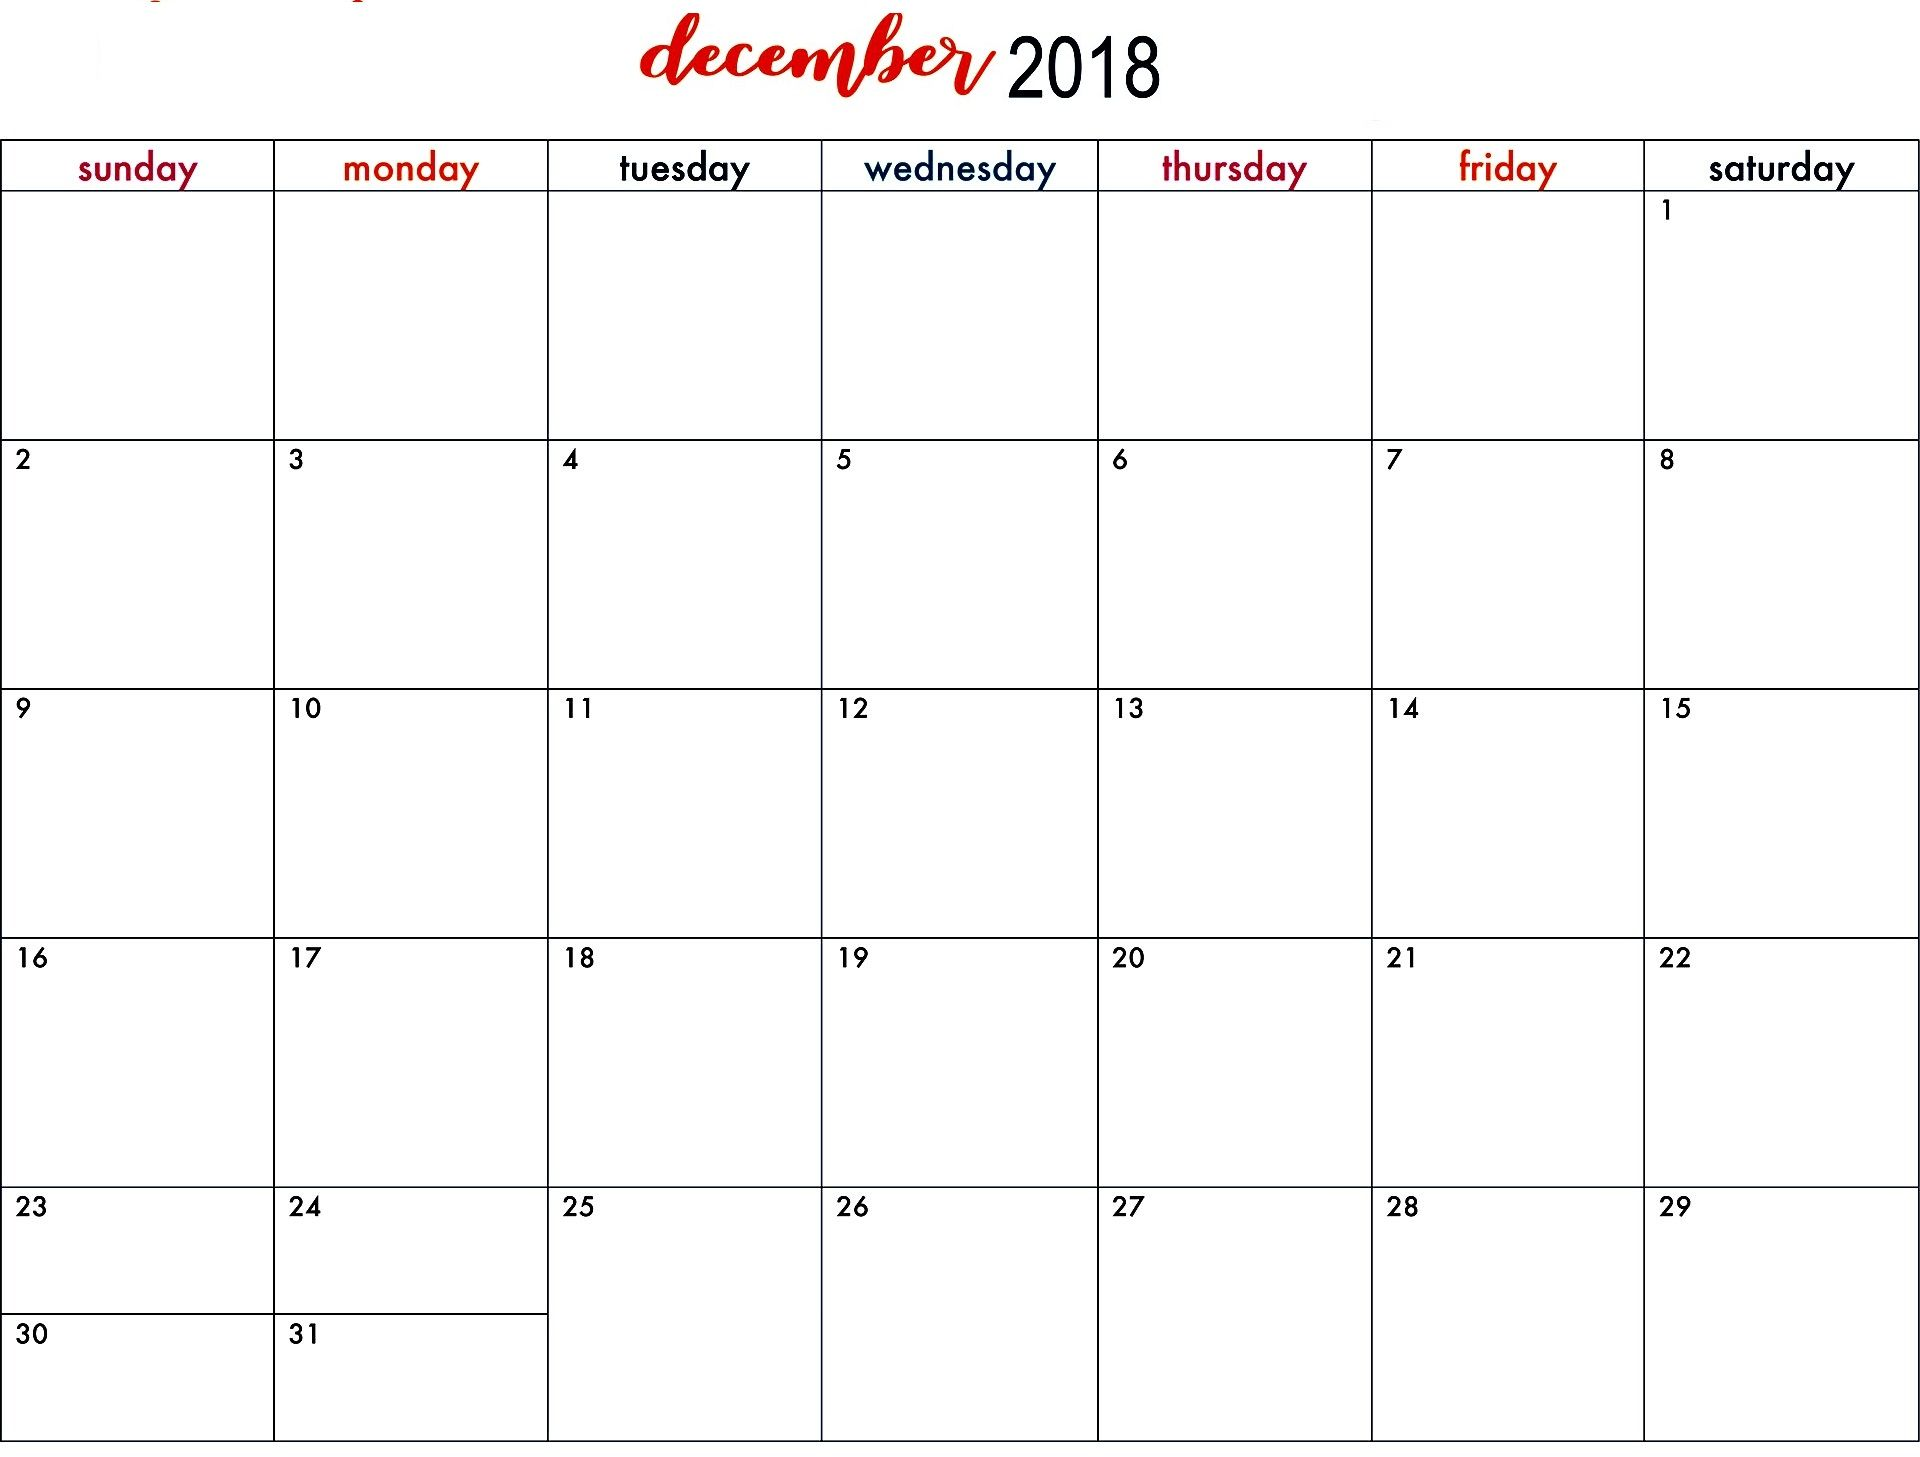 Print December 2018 Calendar With Holidays December 2018 Holidays